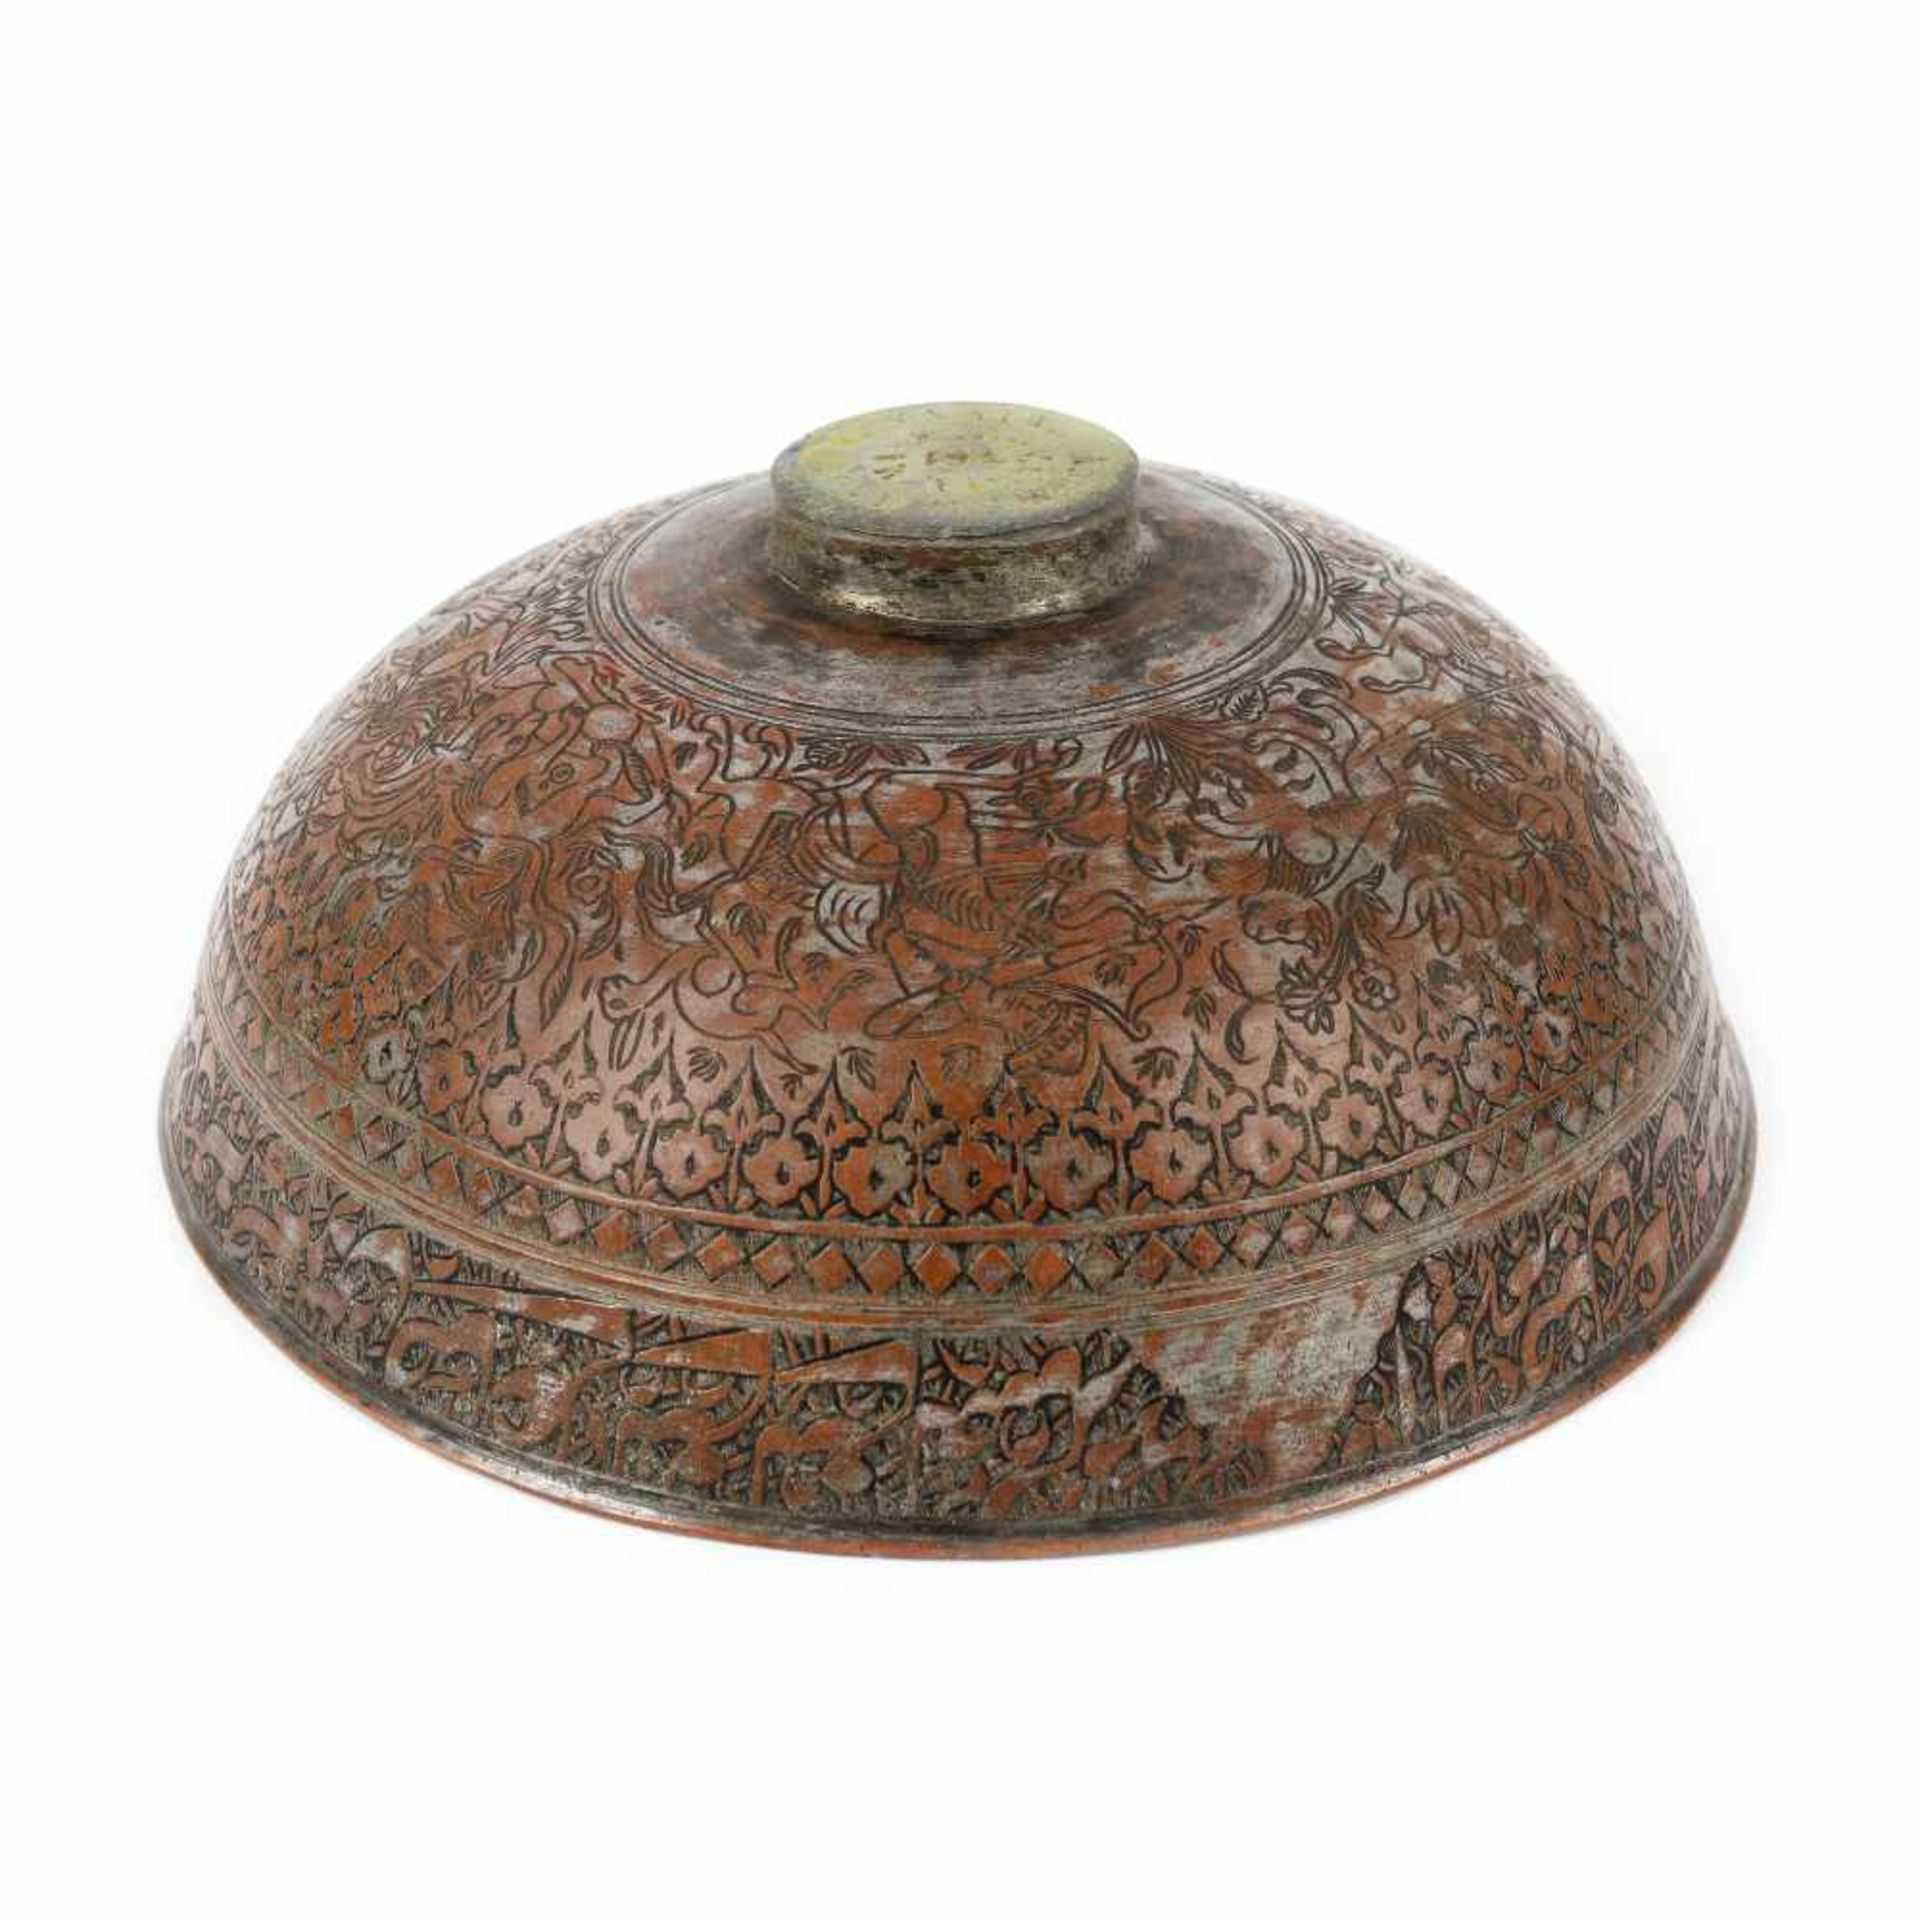 Persian copper vessel, decorated with a hunting scene, early 20th century - Bild 3 aus 4